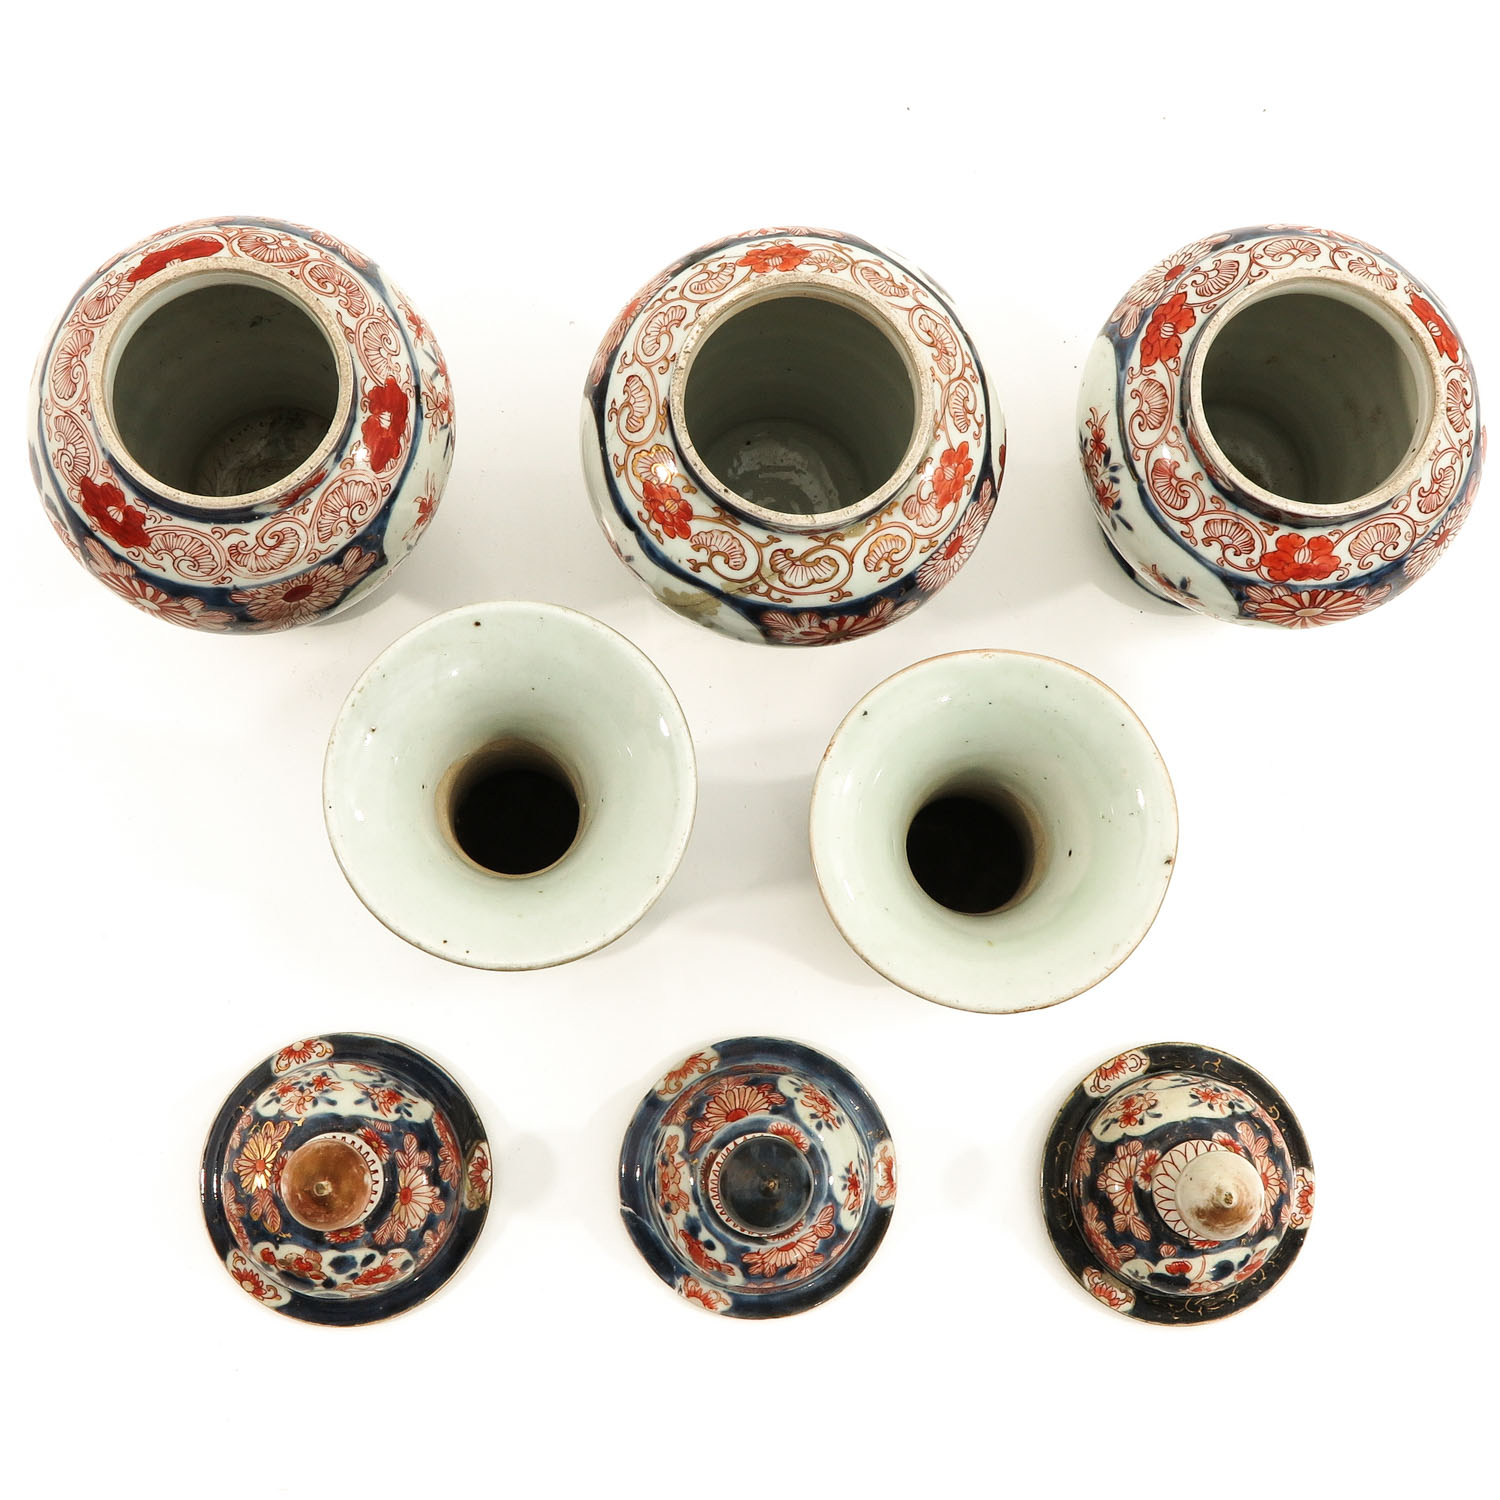 A 5 Piece Imari Garniture Set - Image 5 of 9